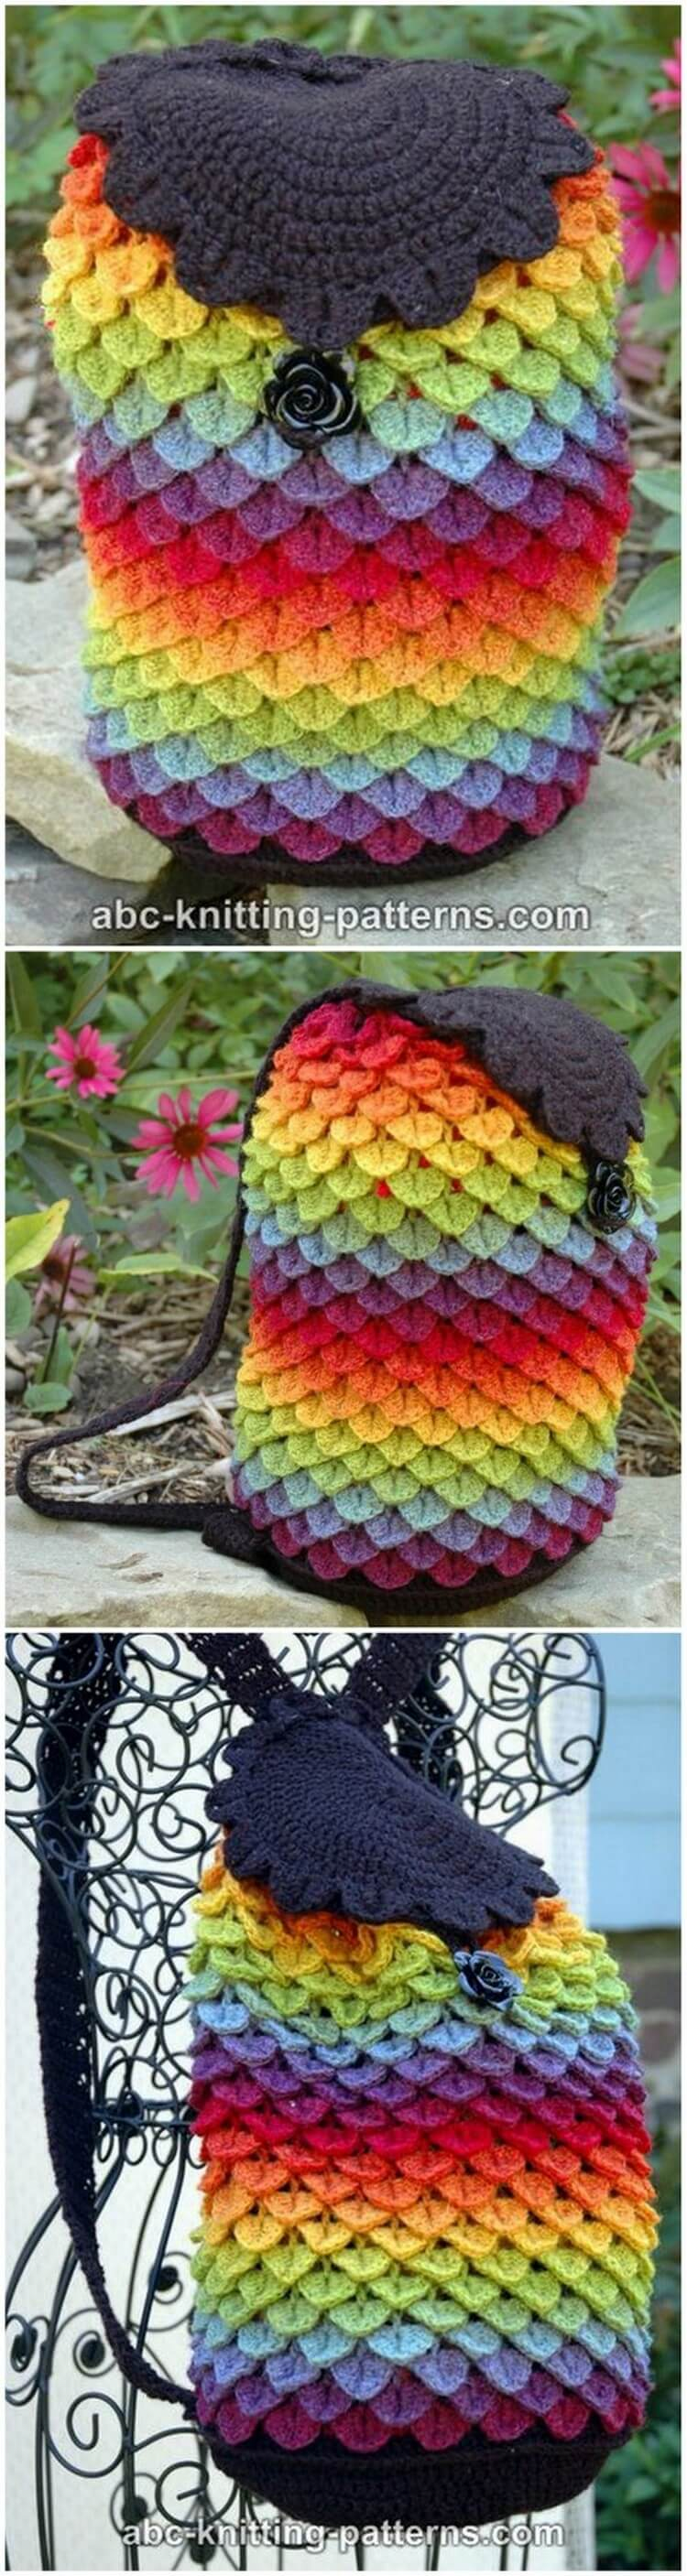 Crochet Backpack Pattern (52)